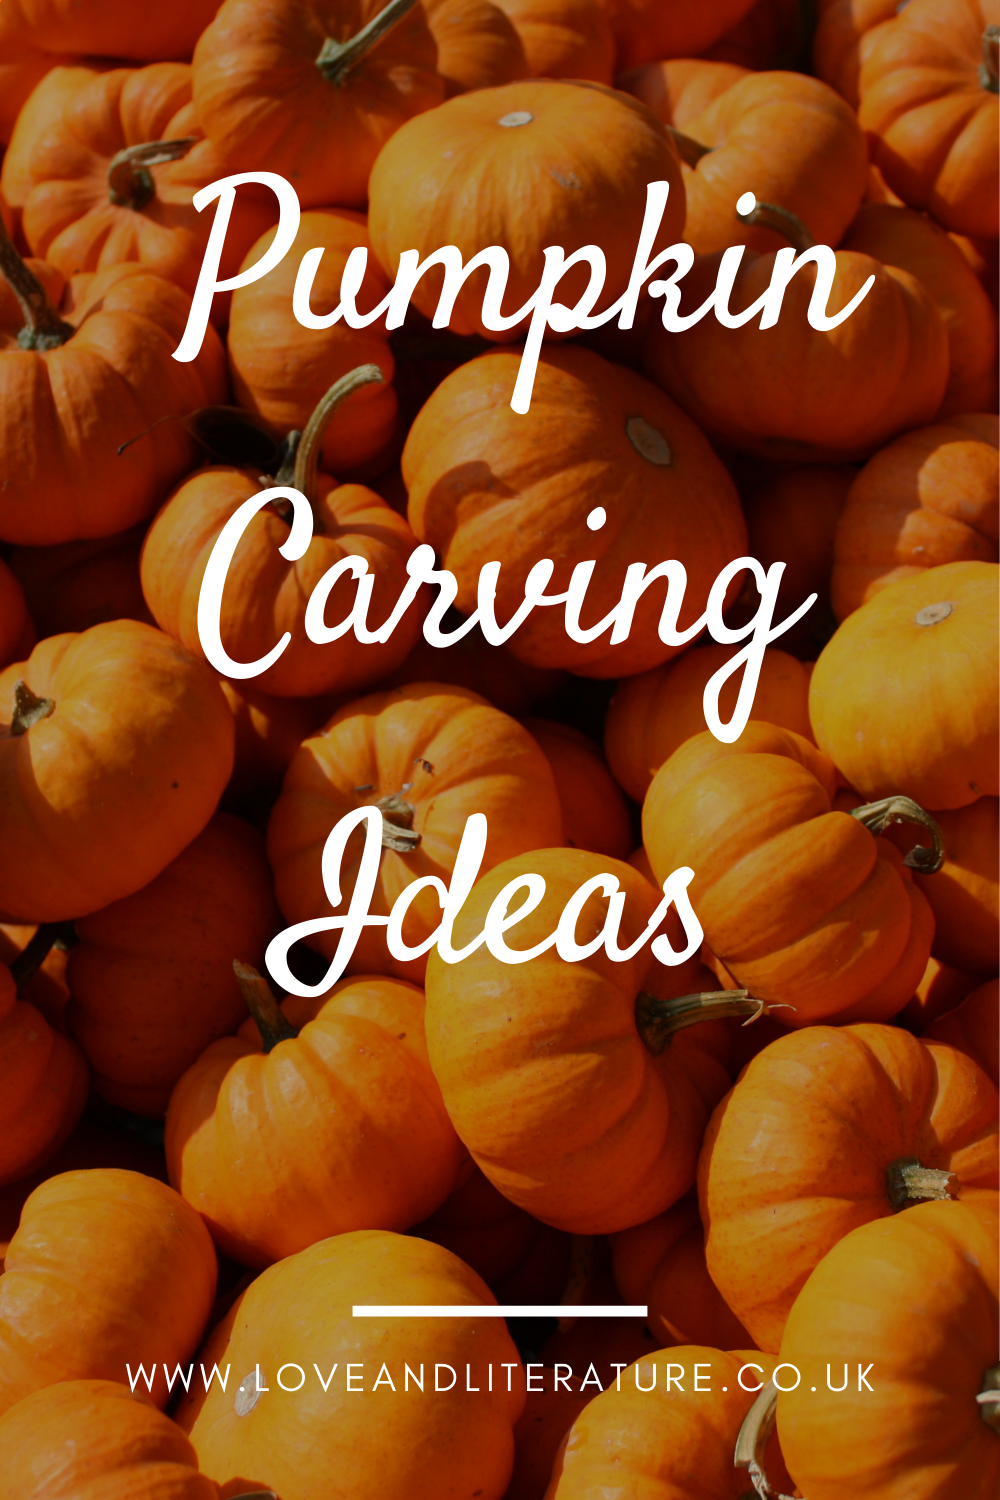 Pumpkin Carving Ideas Pin, Pumpkins background, text at front centre